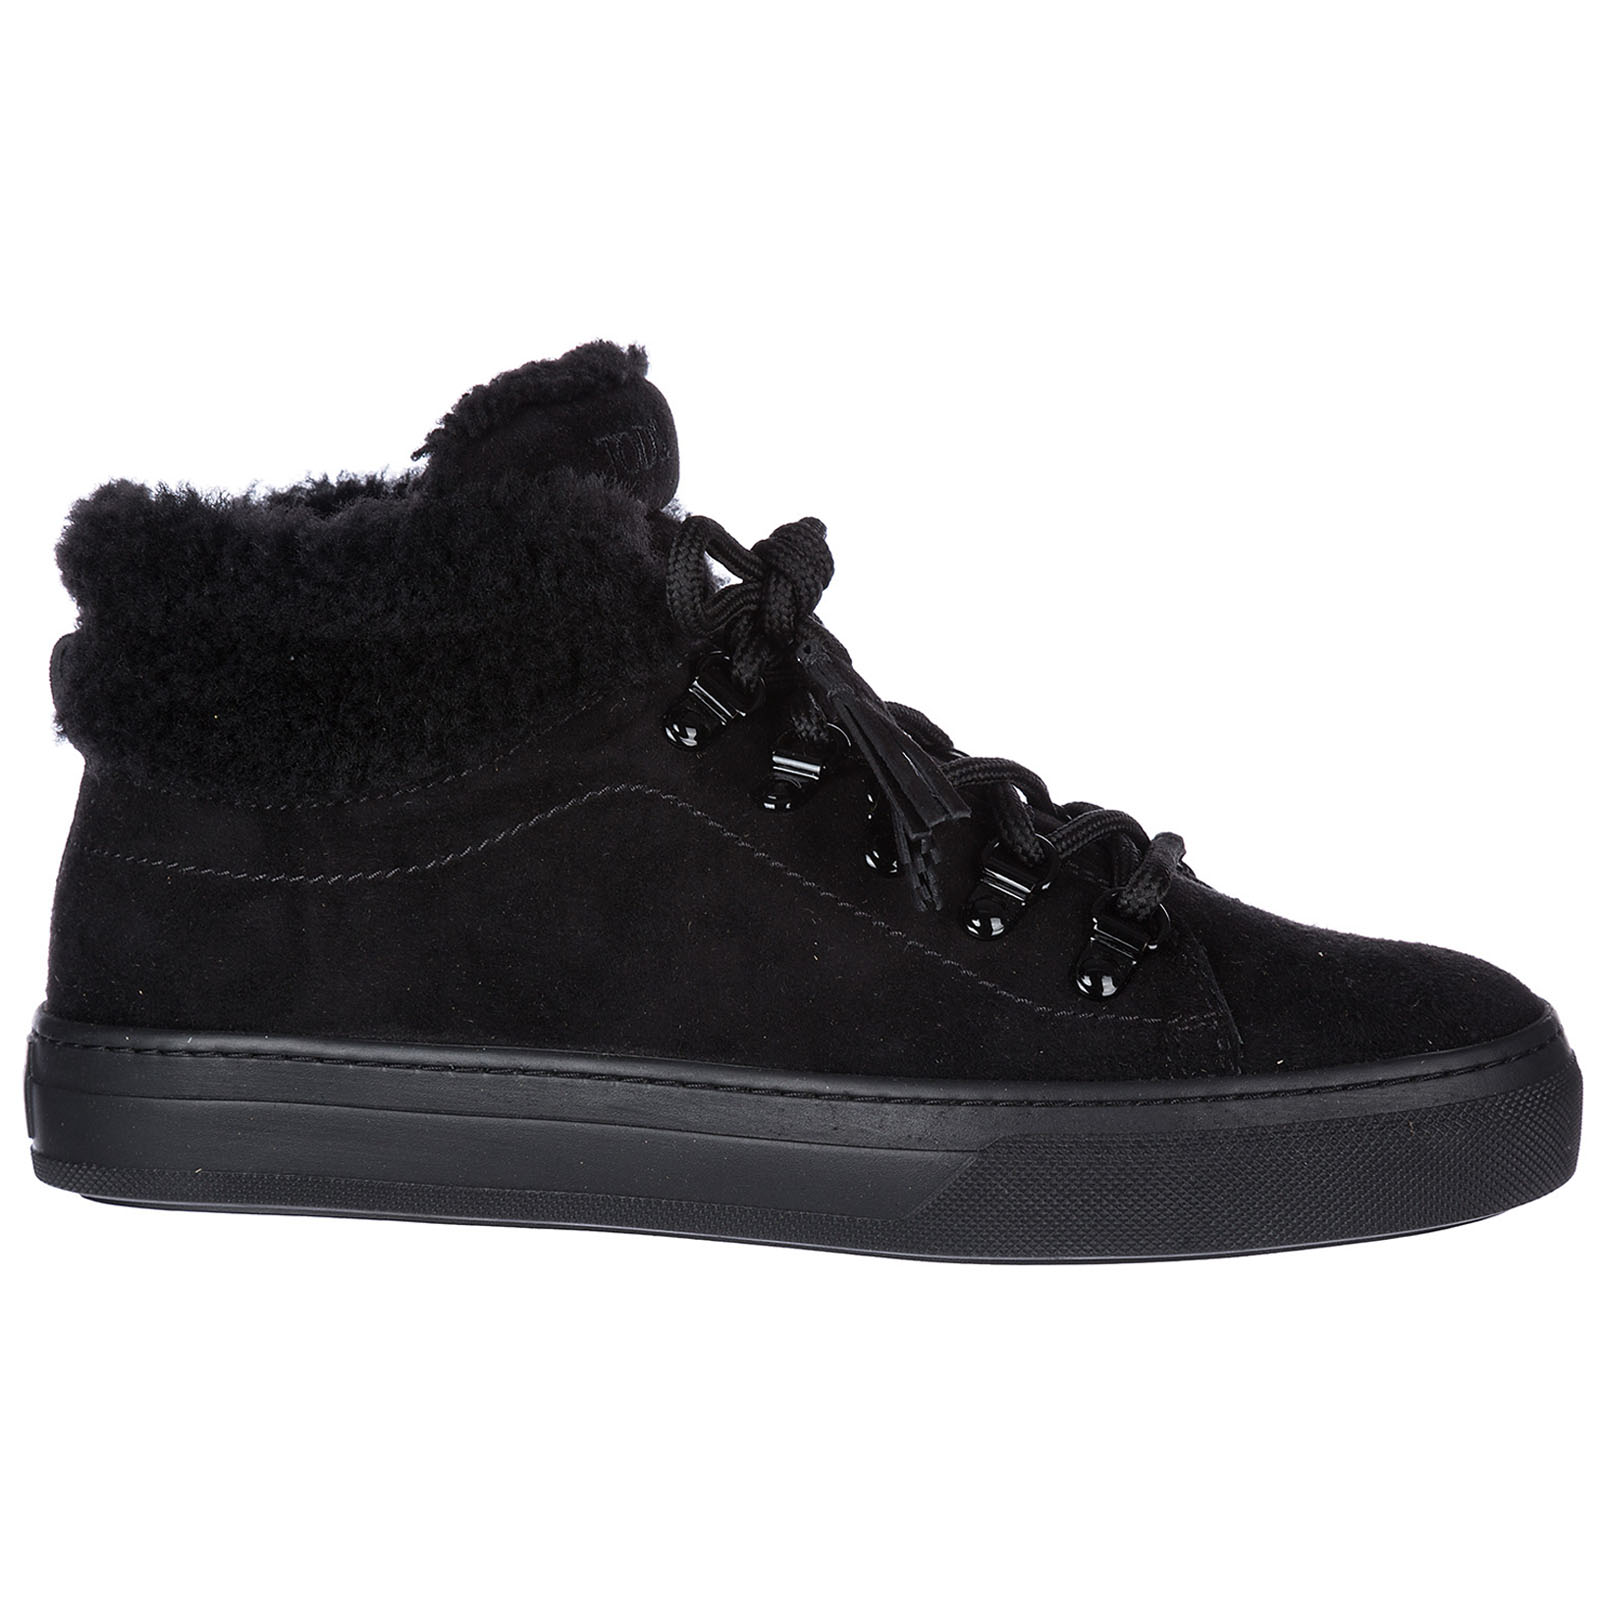 Women's shoes high top suede trainers sneakers sportivo